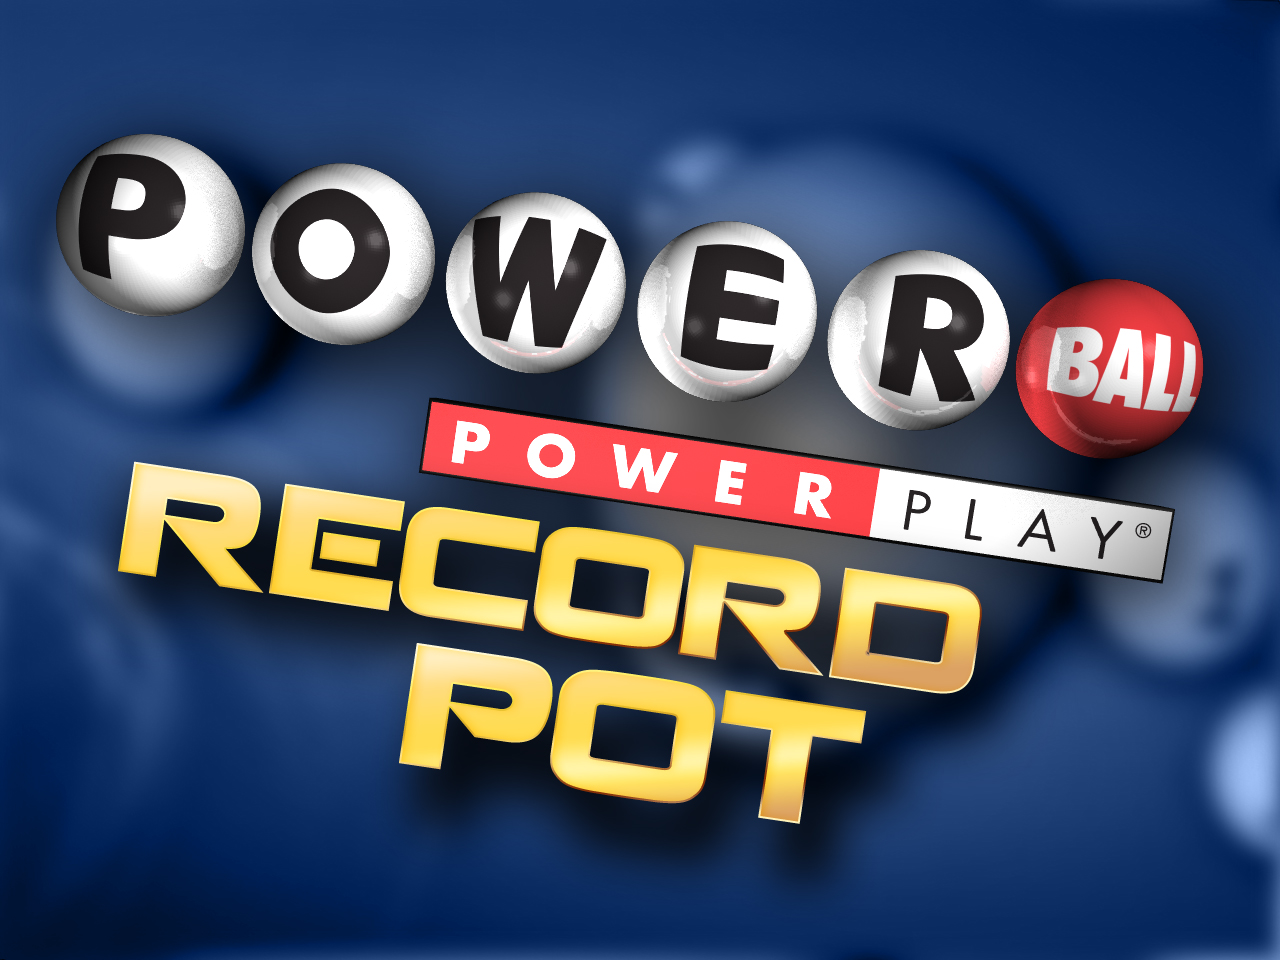 powerball - photo #6